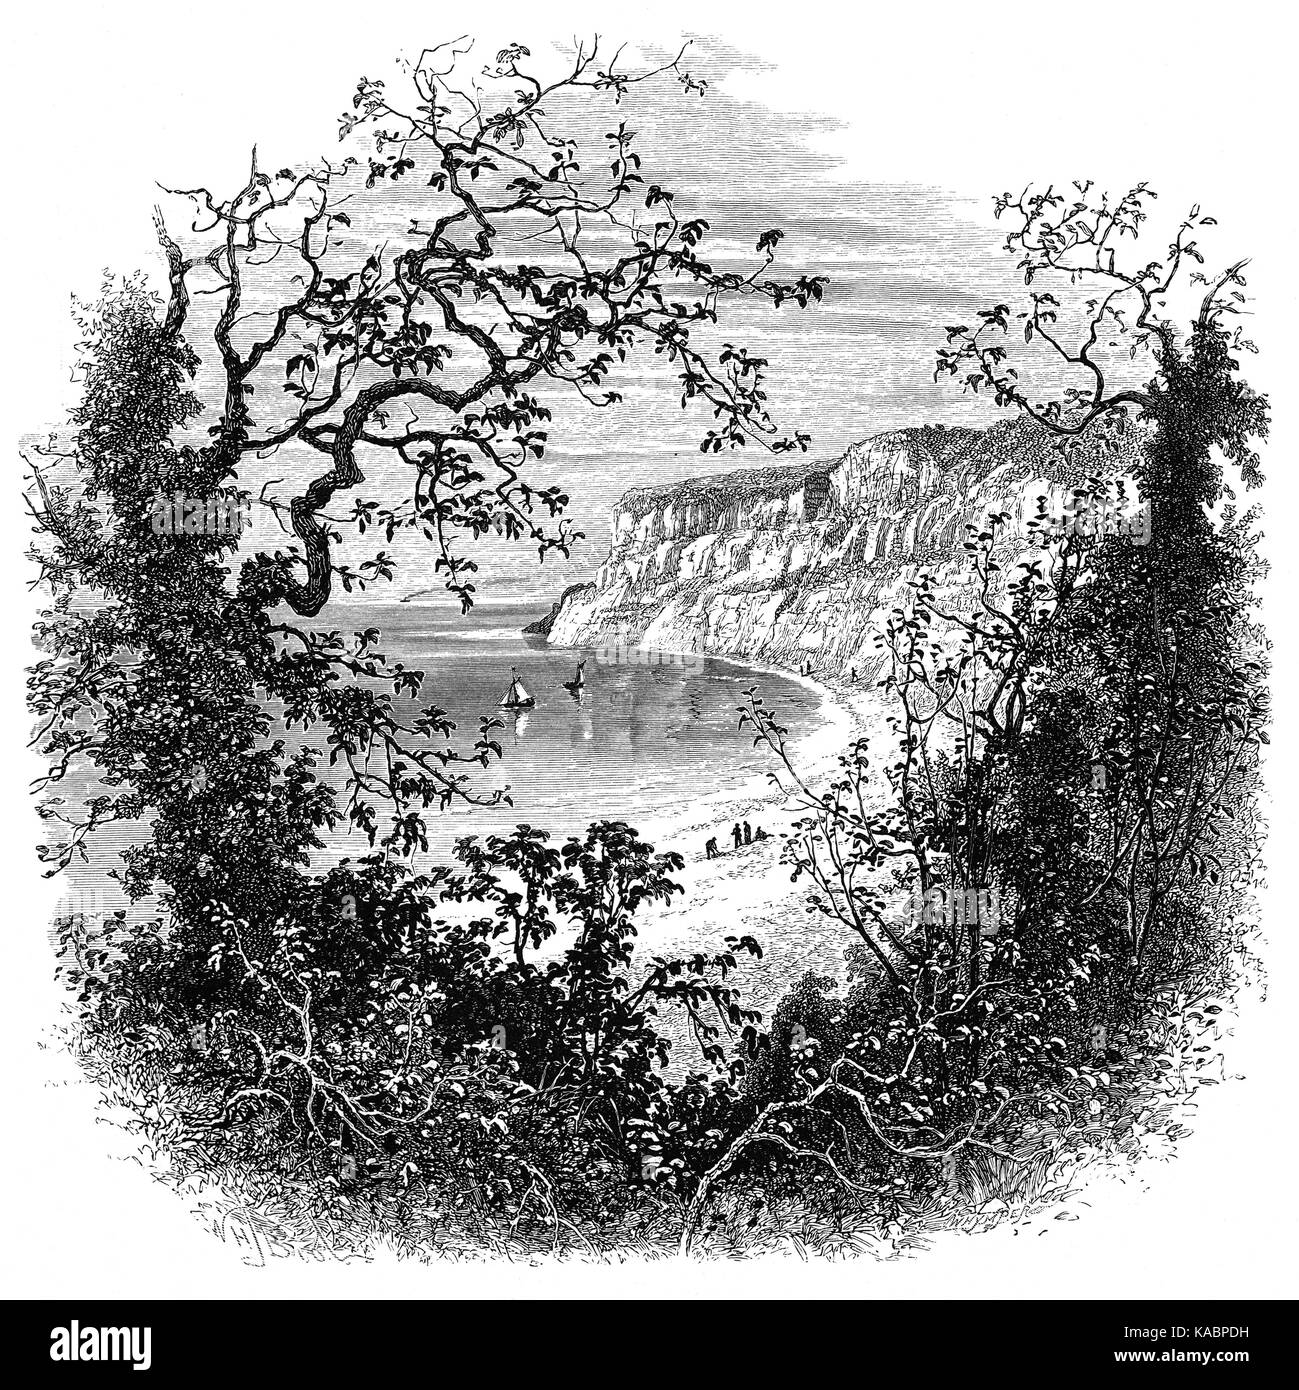 1870: Shanklin Chine is a  wooded coastal ravine, it contains waterfalls, trees and lush vegetation. The tourist - Stock Image